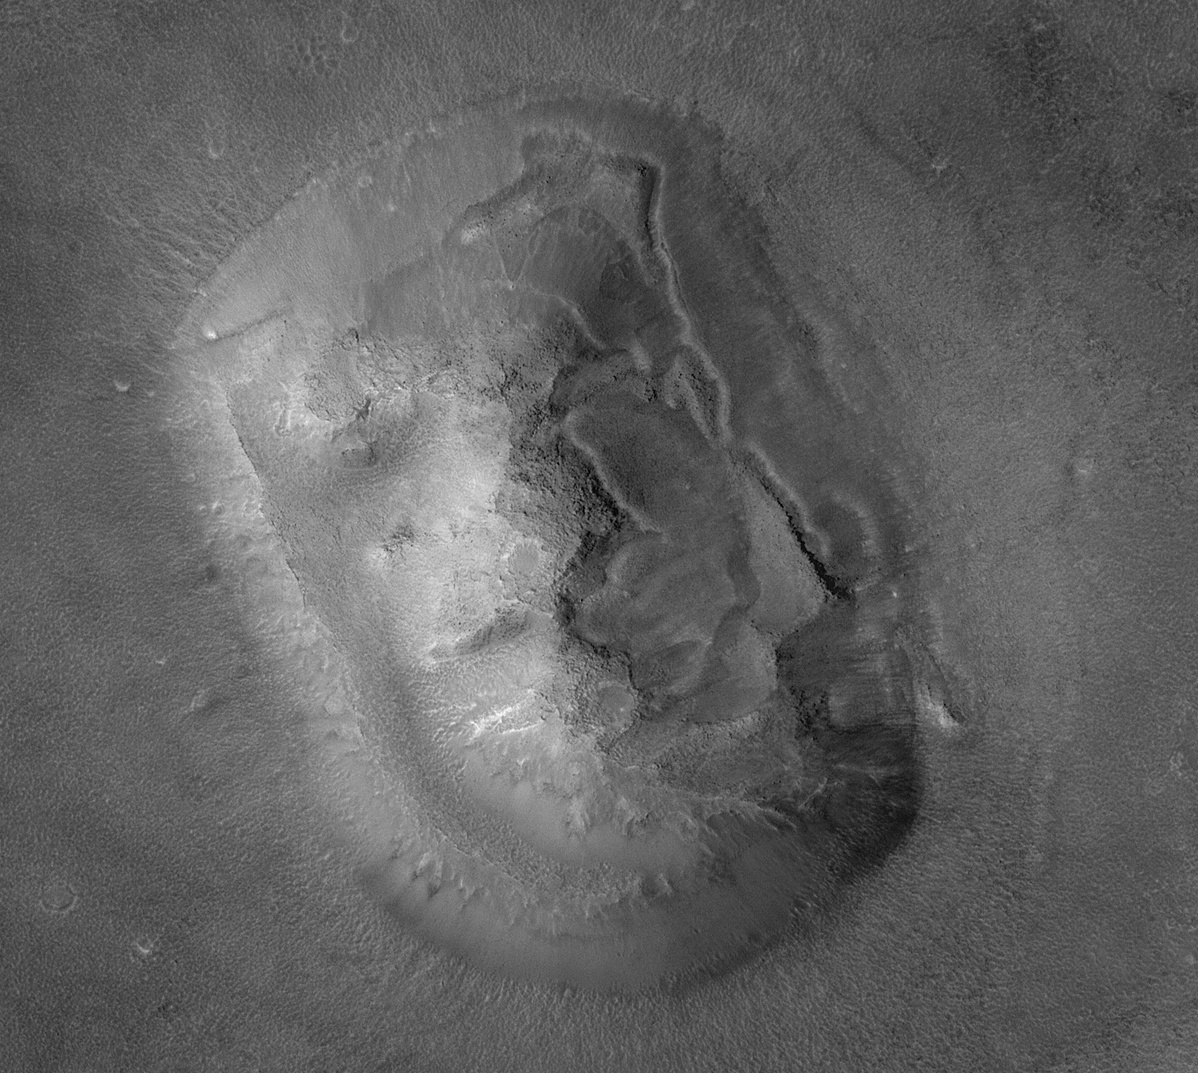 A newer look at the Mars face